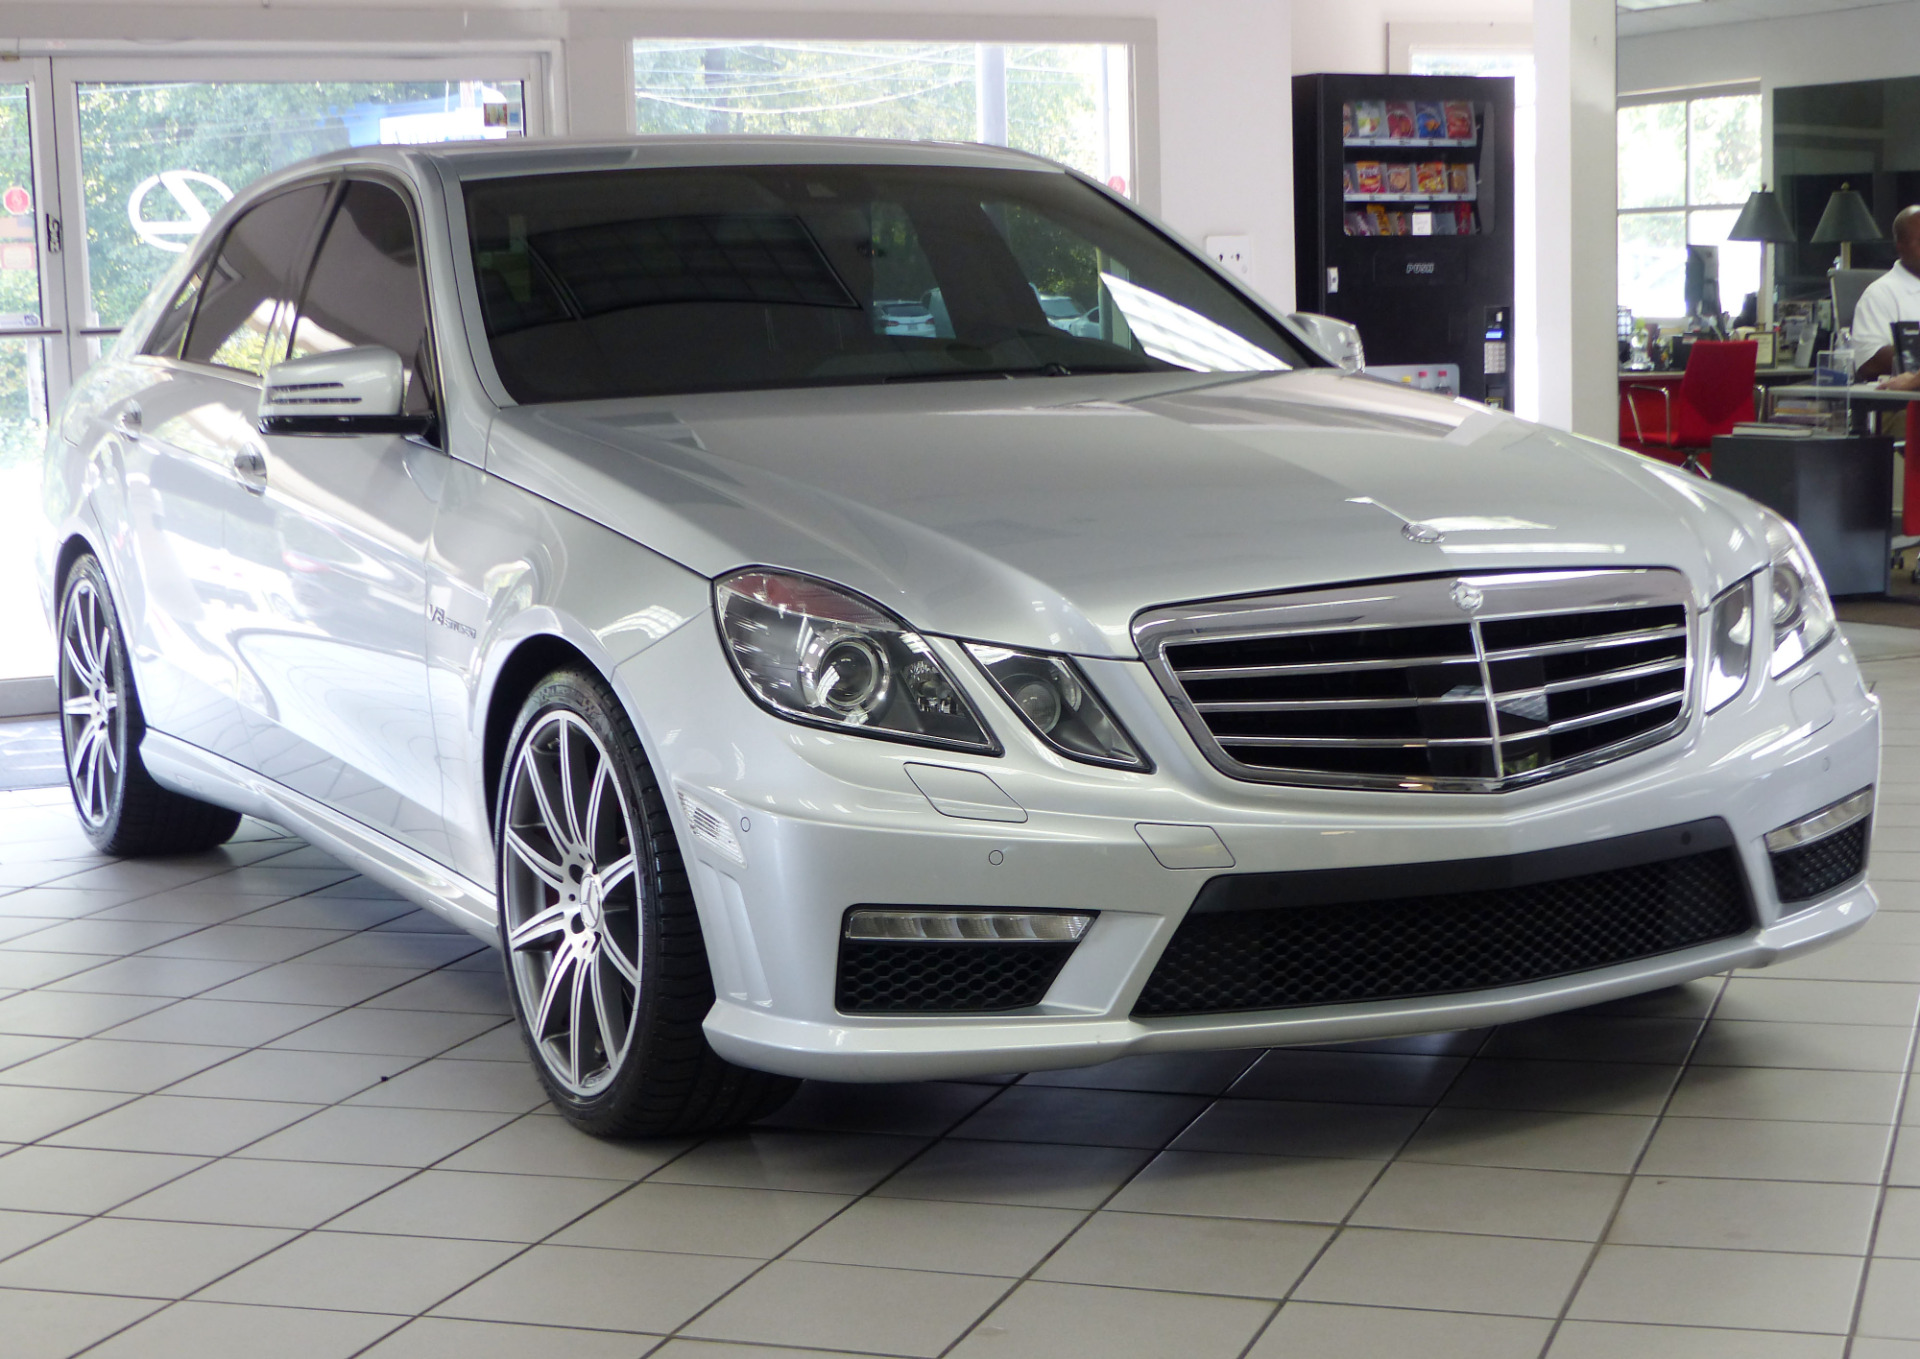 used 2012 mercedes benz e class marietta ga. Black Bedroom Furniture Sets. Home Design Ideas